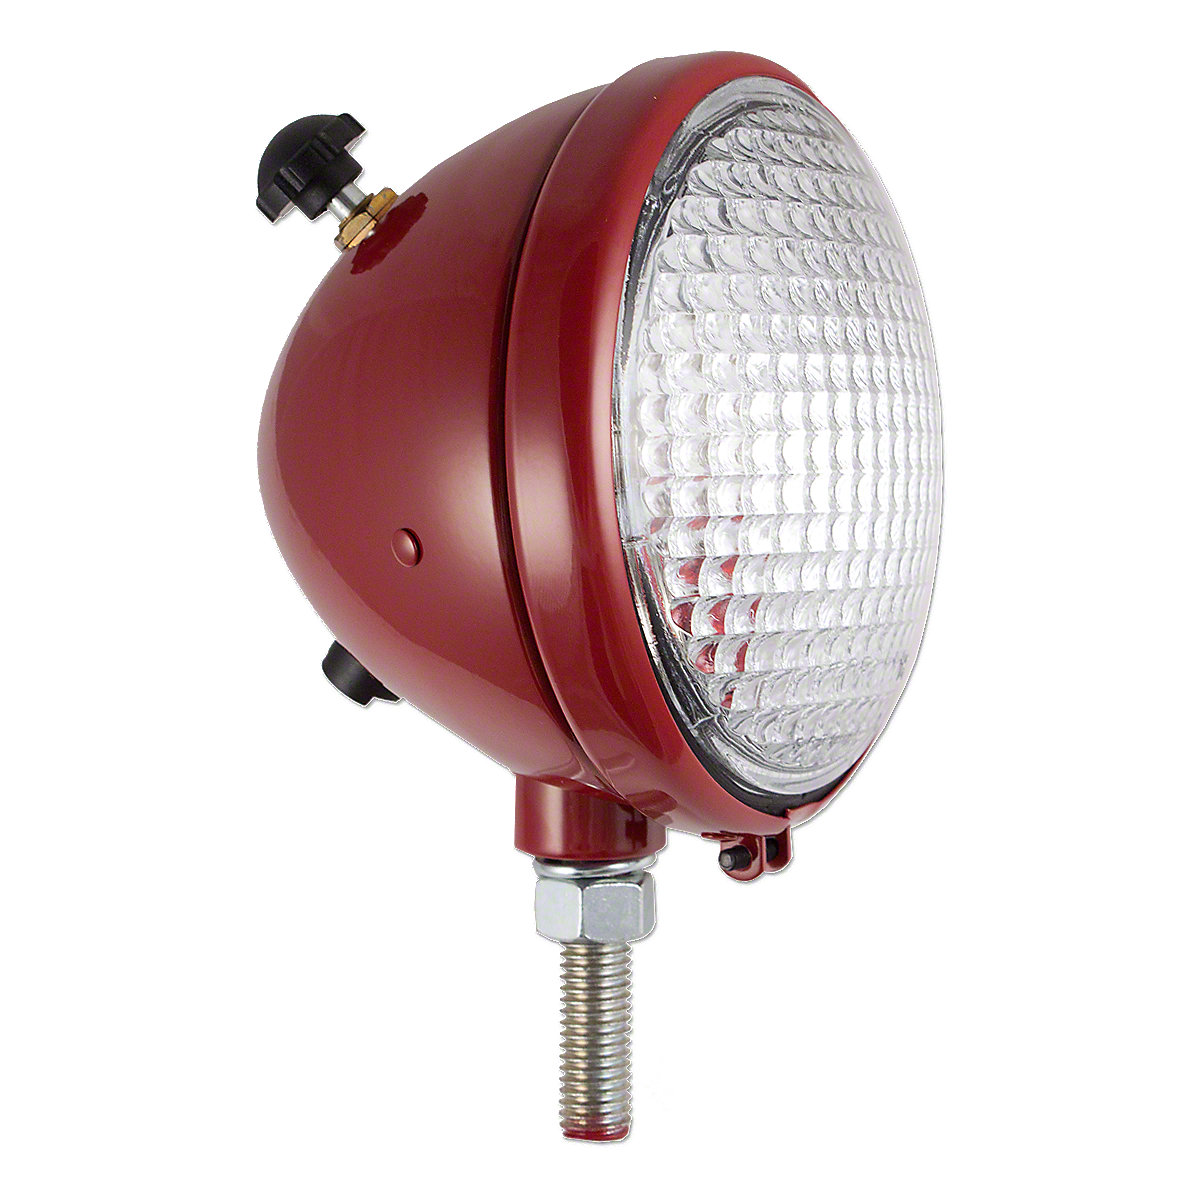 IHS473 6 Volt Rear Combo Light Assembly